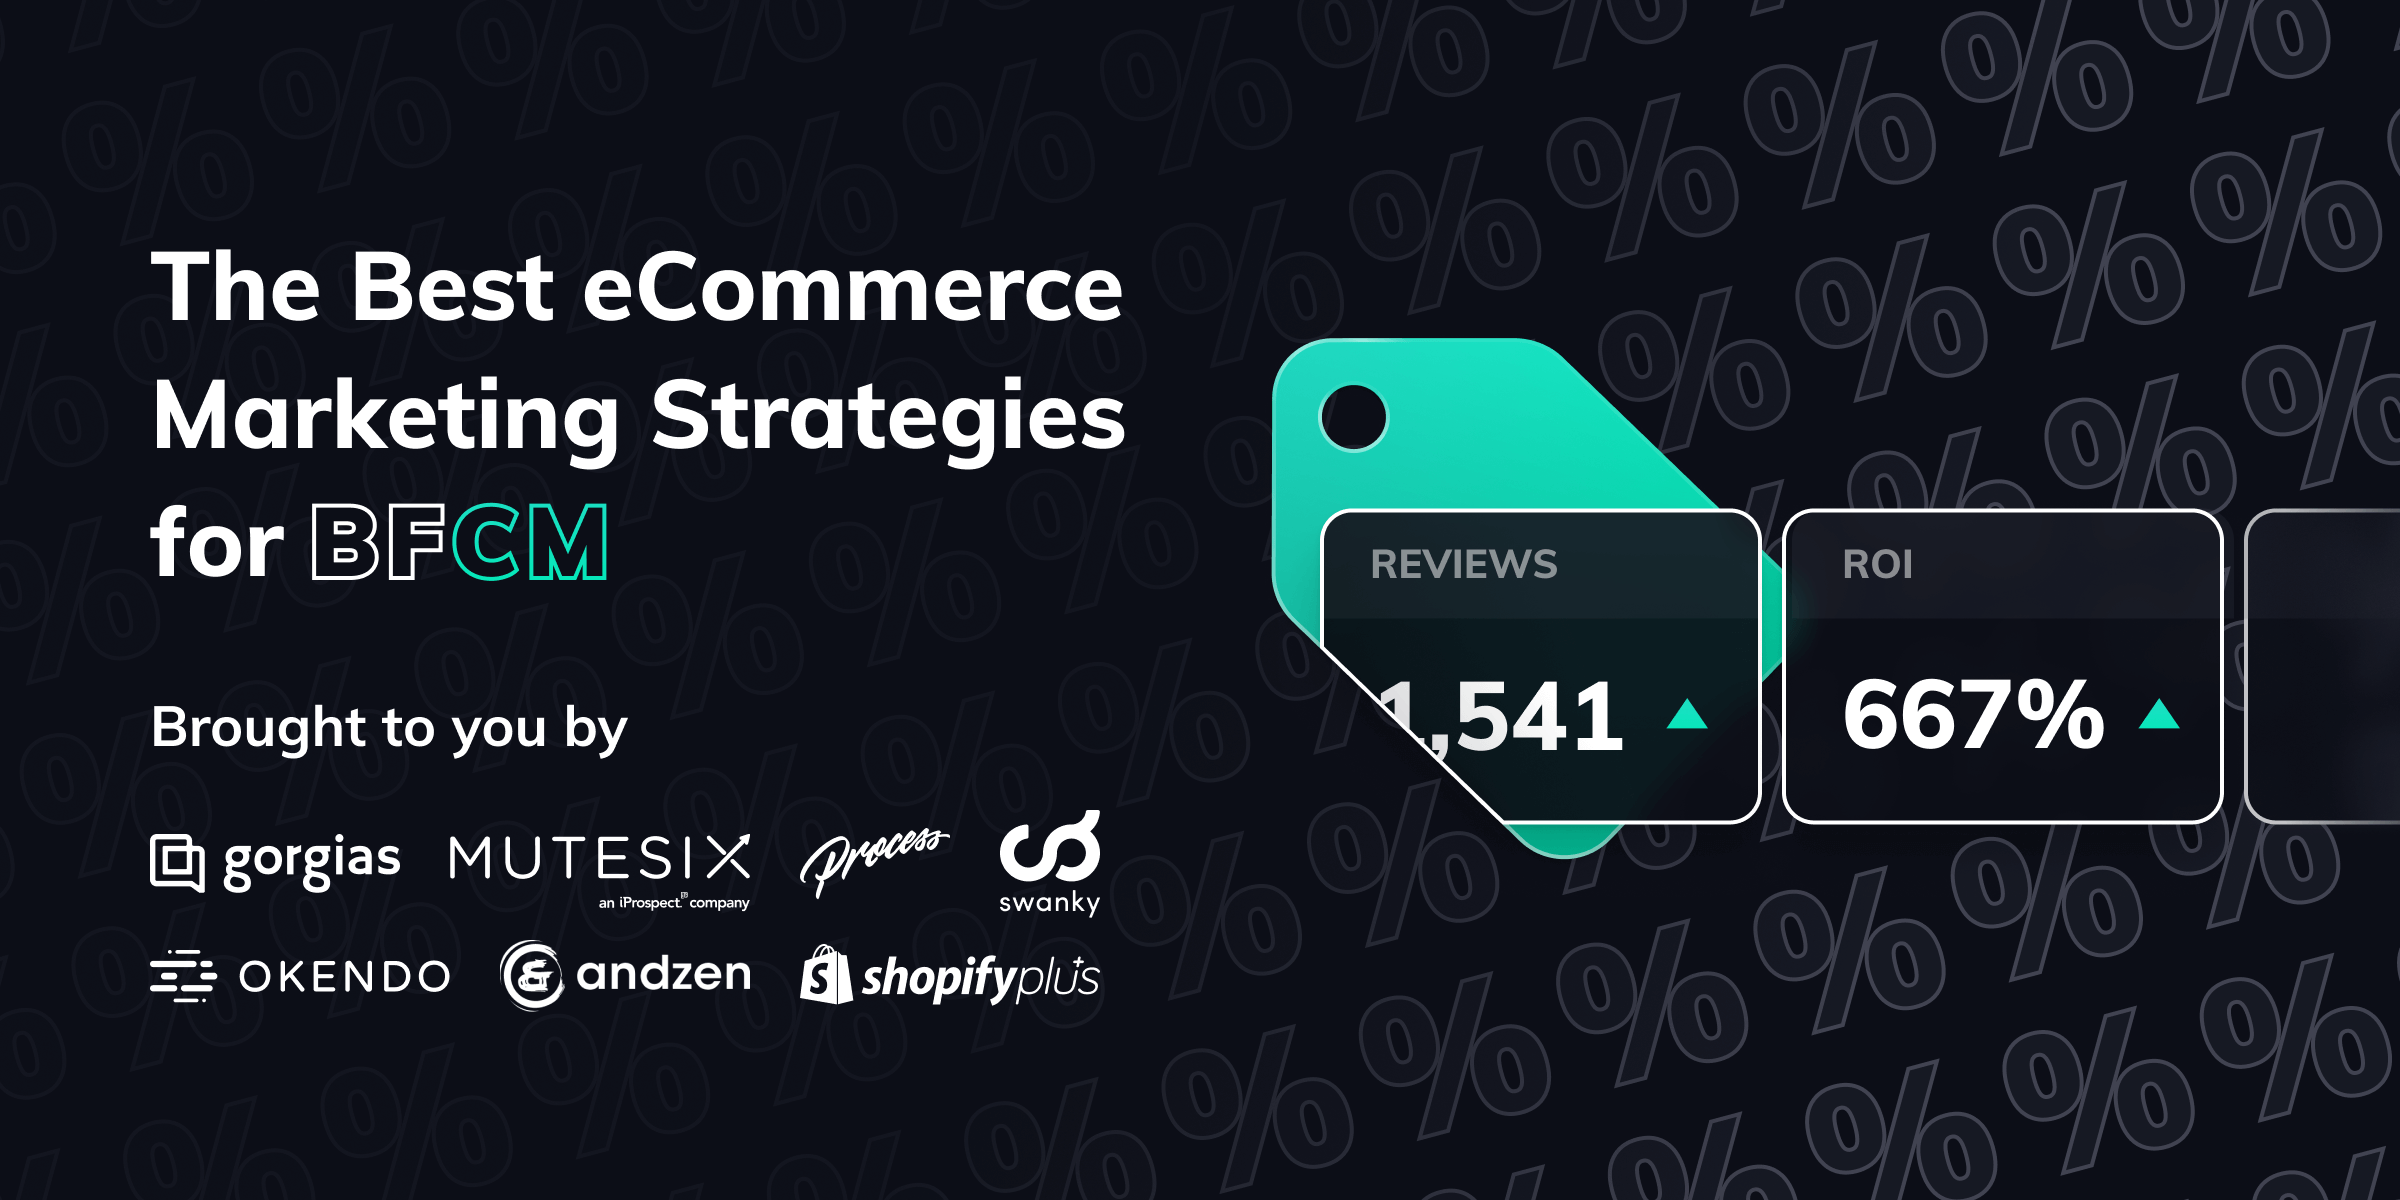 The Best eCommerce Marketing Strategies for BFCM from Shopify Experts